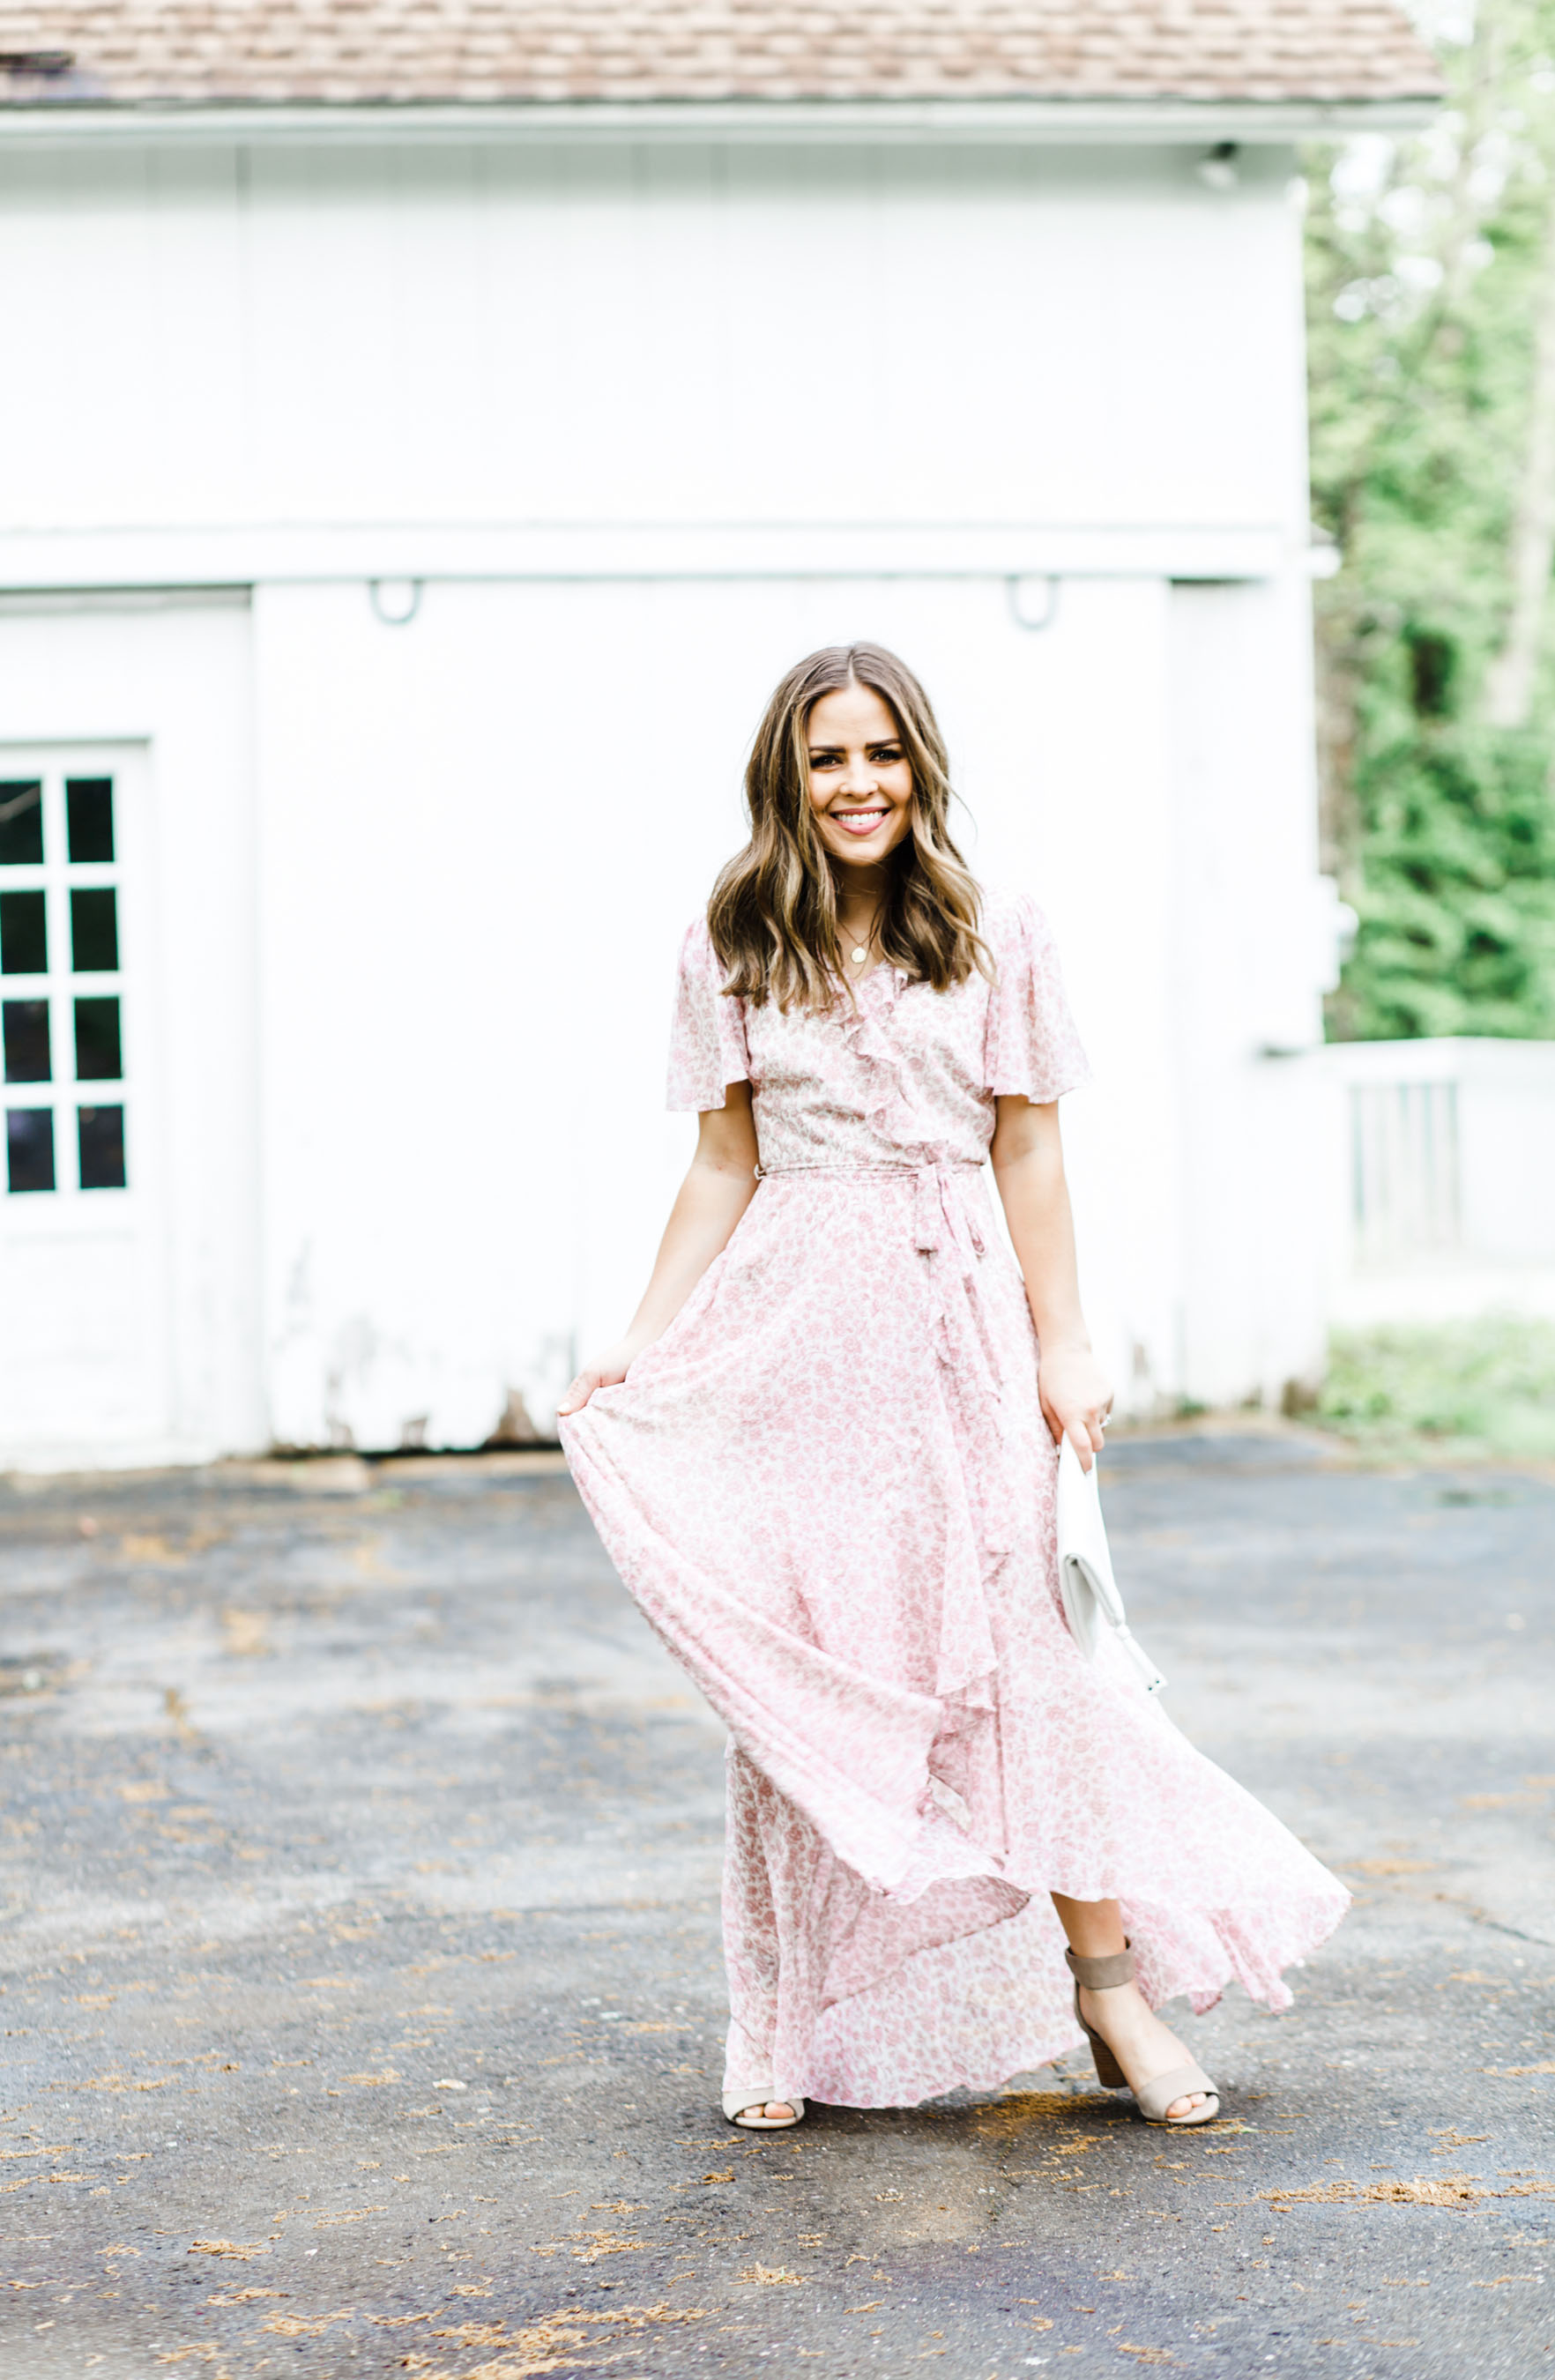 The Prettiest Wedding Guest Dresses And What Not To Wear To A